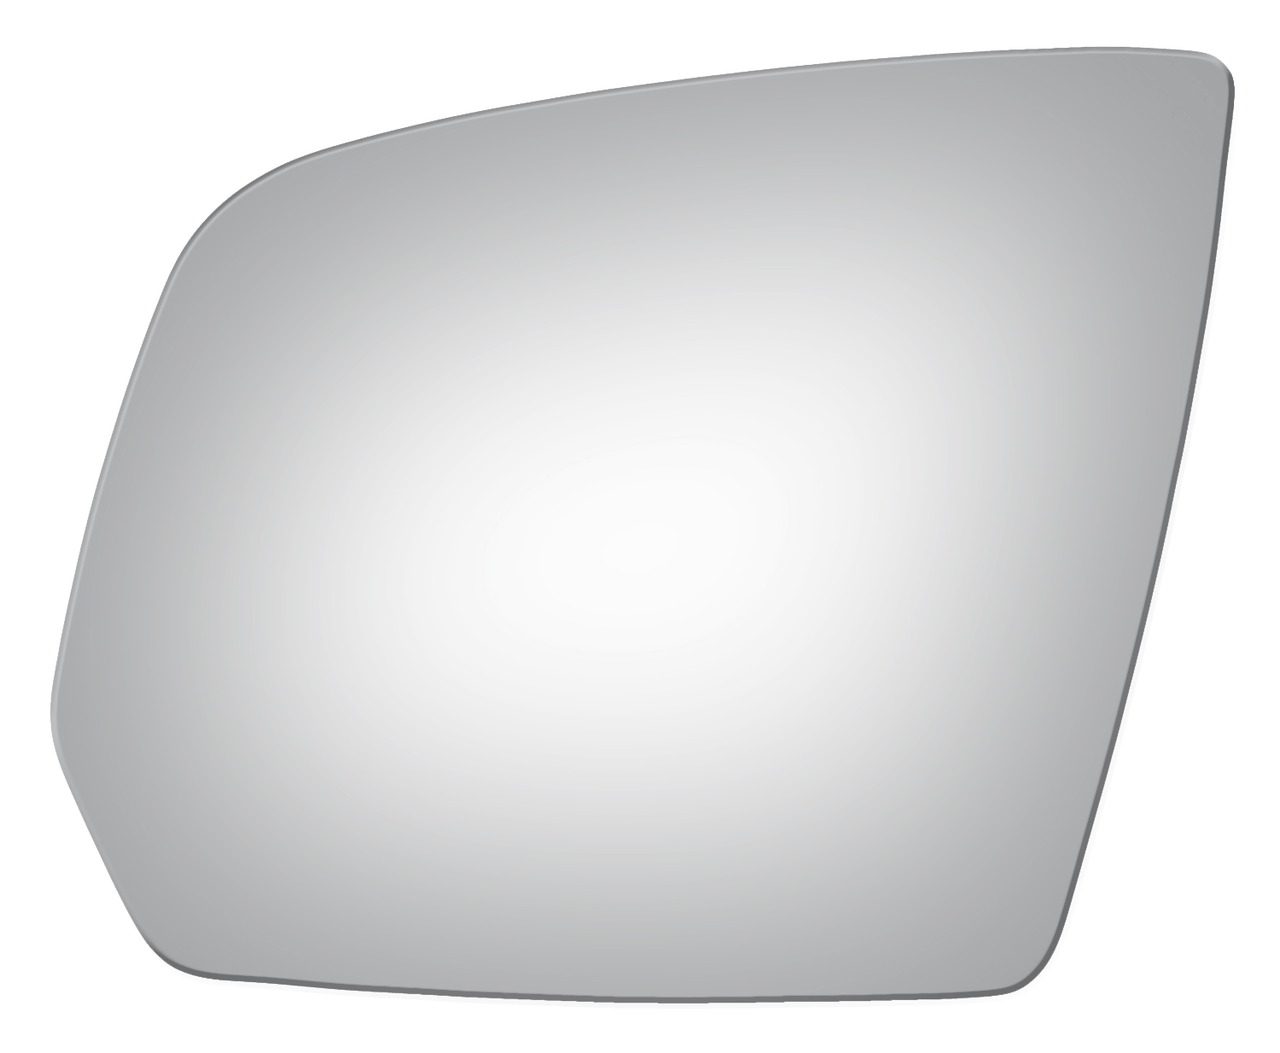 2010 MERCEDES-BENZ ML63 AMG Driver Side Mirror - 4282